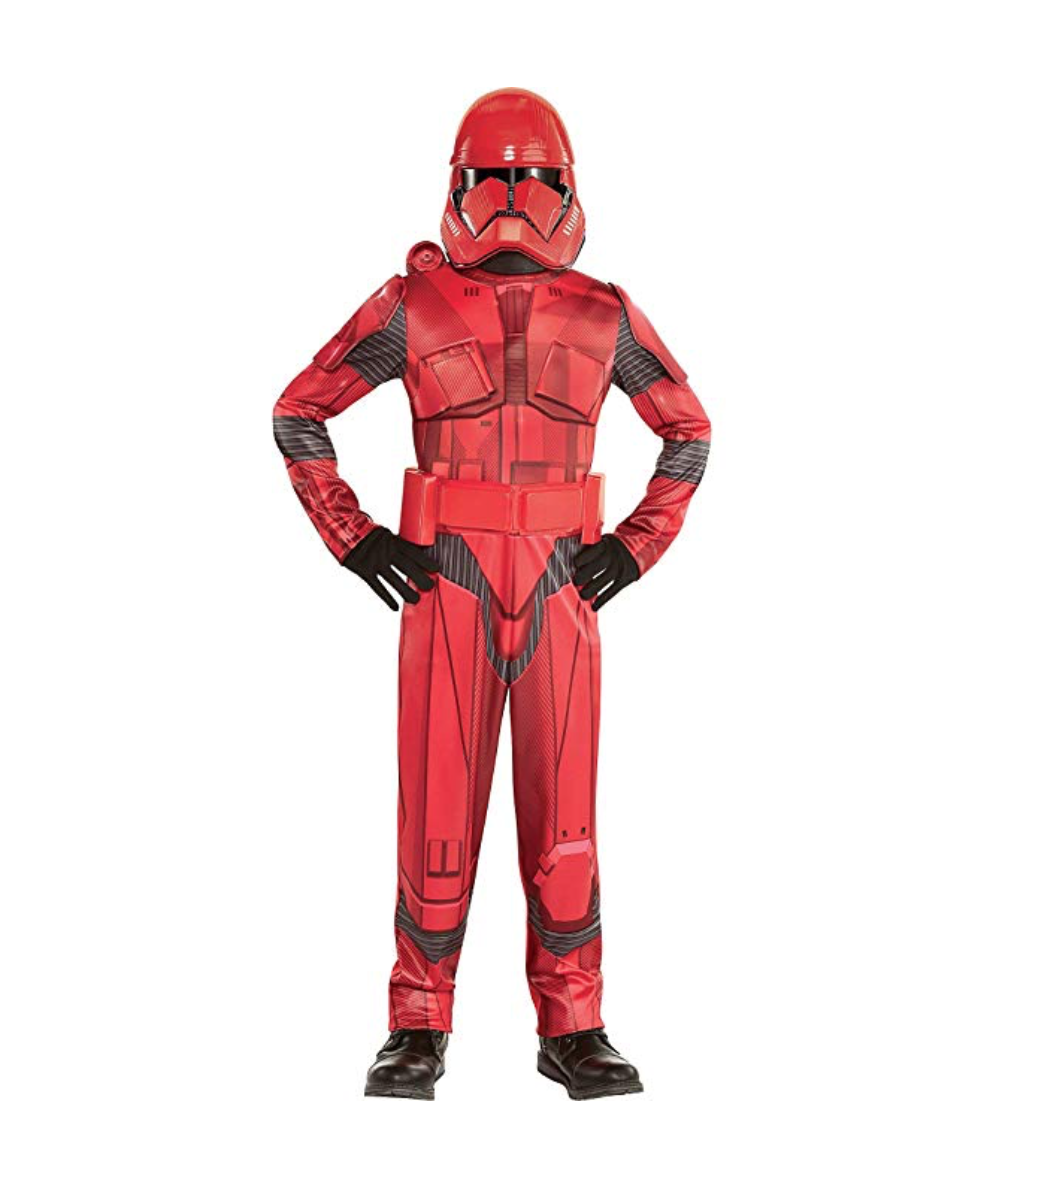 TROS FO Sith Trooper Costume